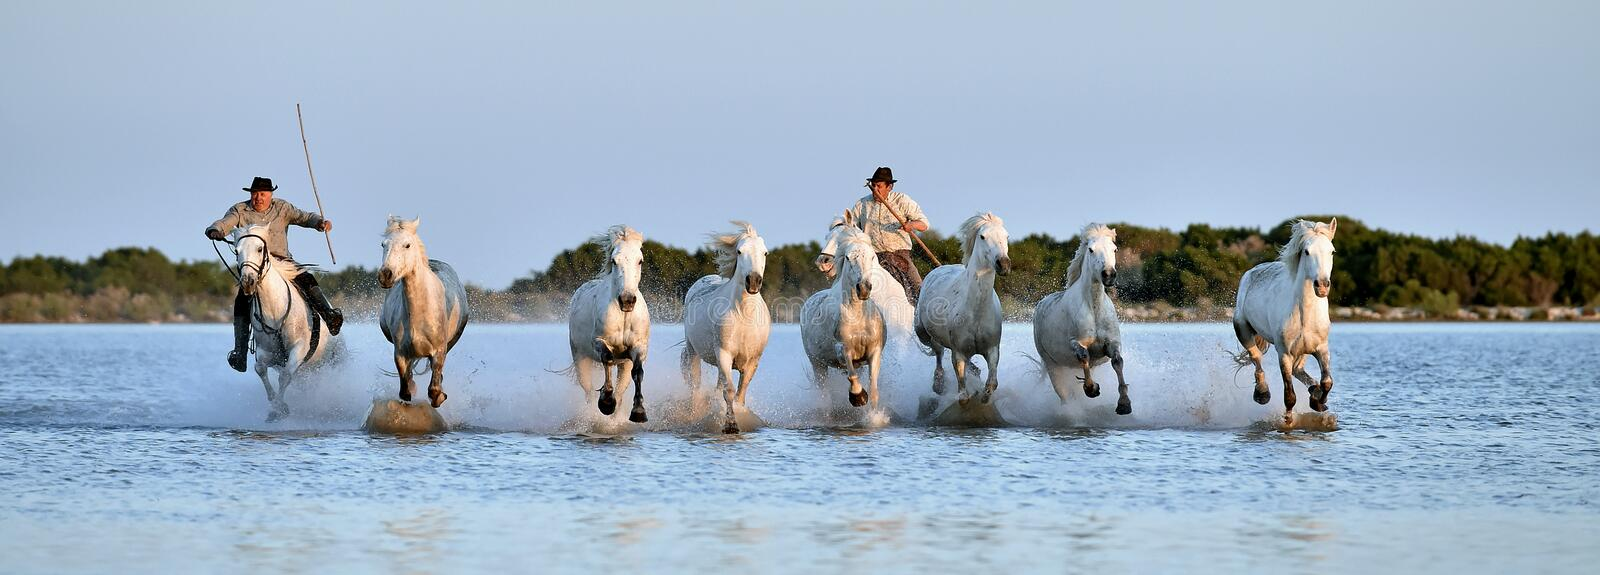 Riders and Herd of White Camargue horses running through water stock photography